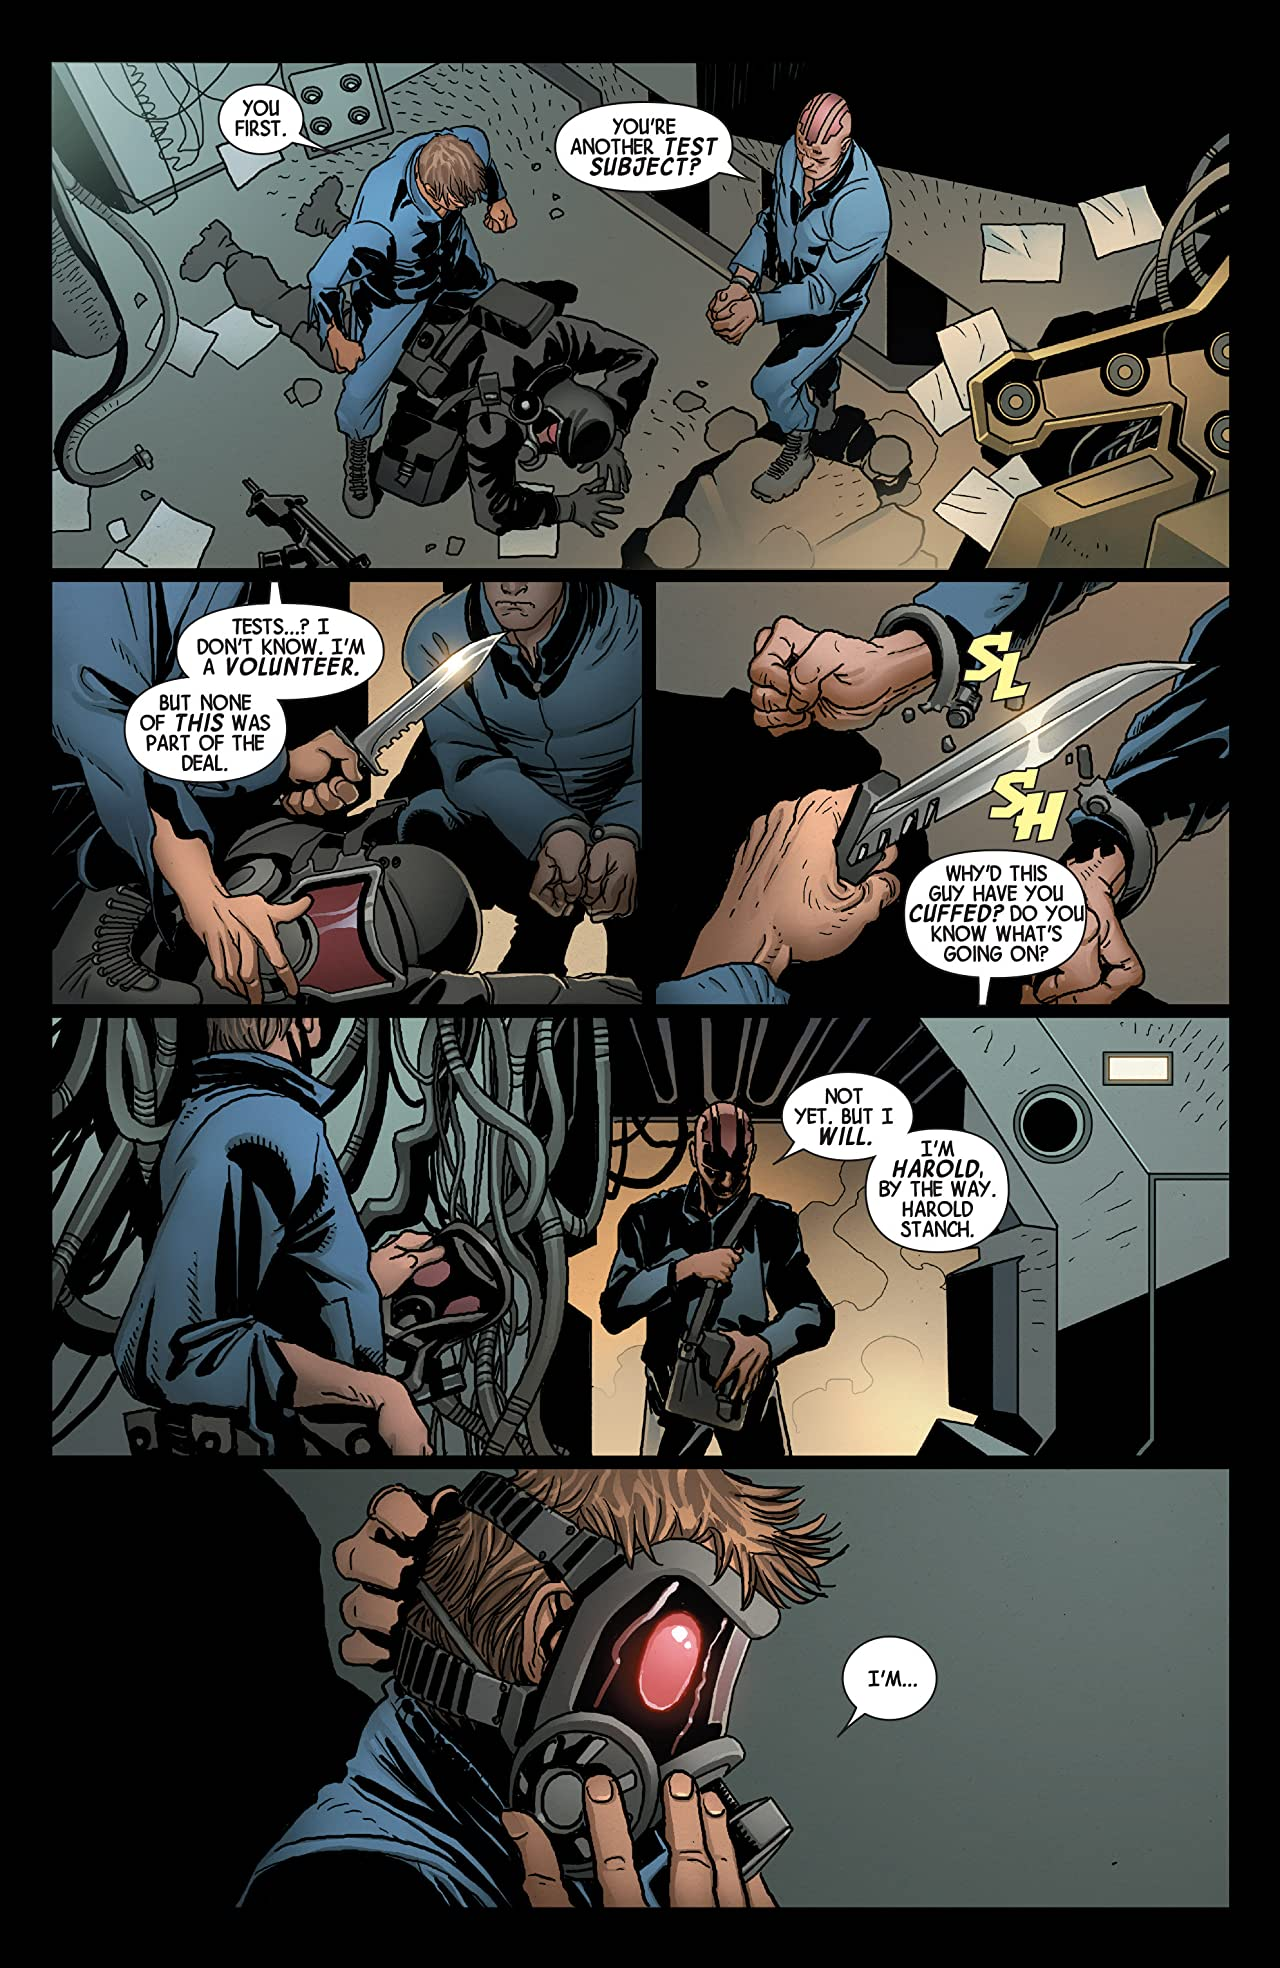 Death of Wolverine: The Weapon X Program #1 (of 5)